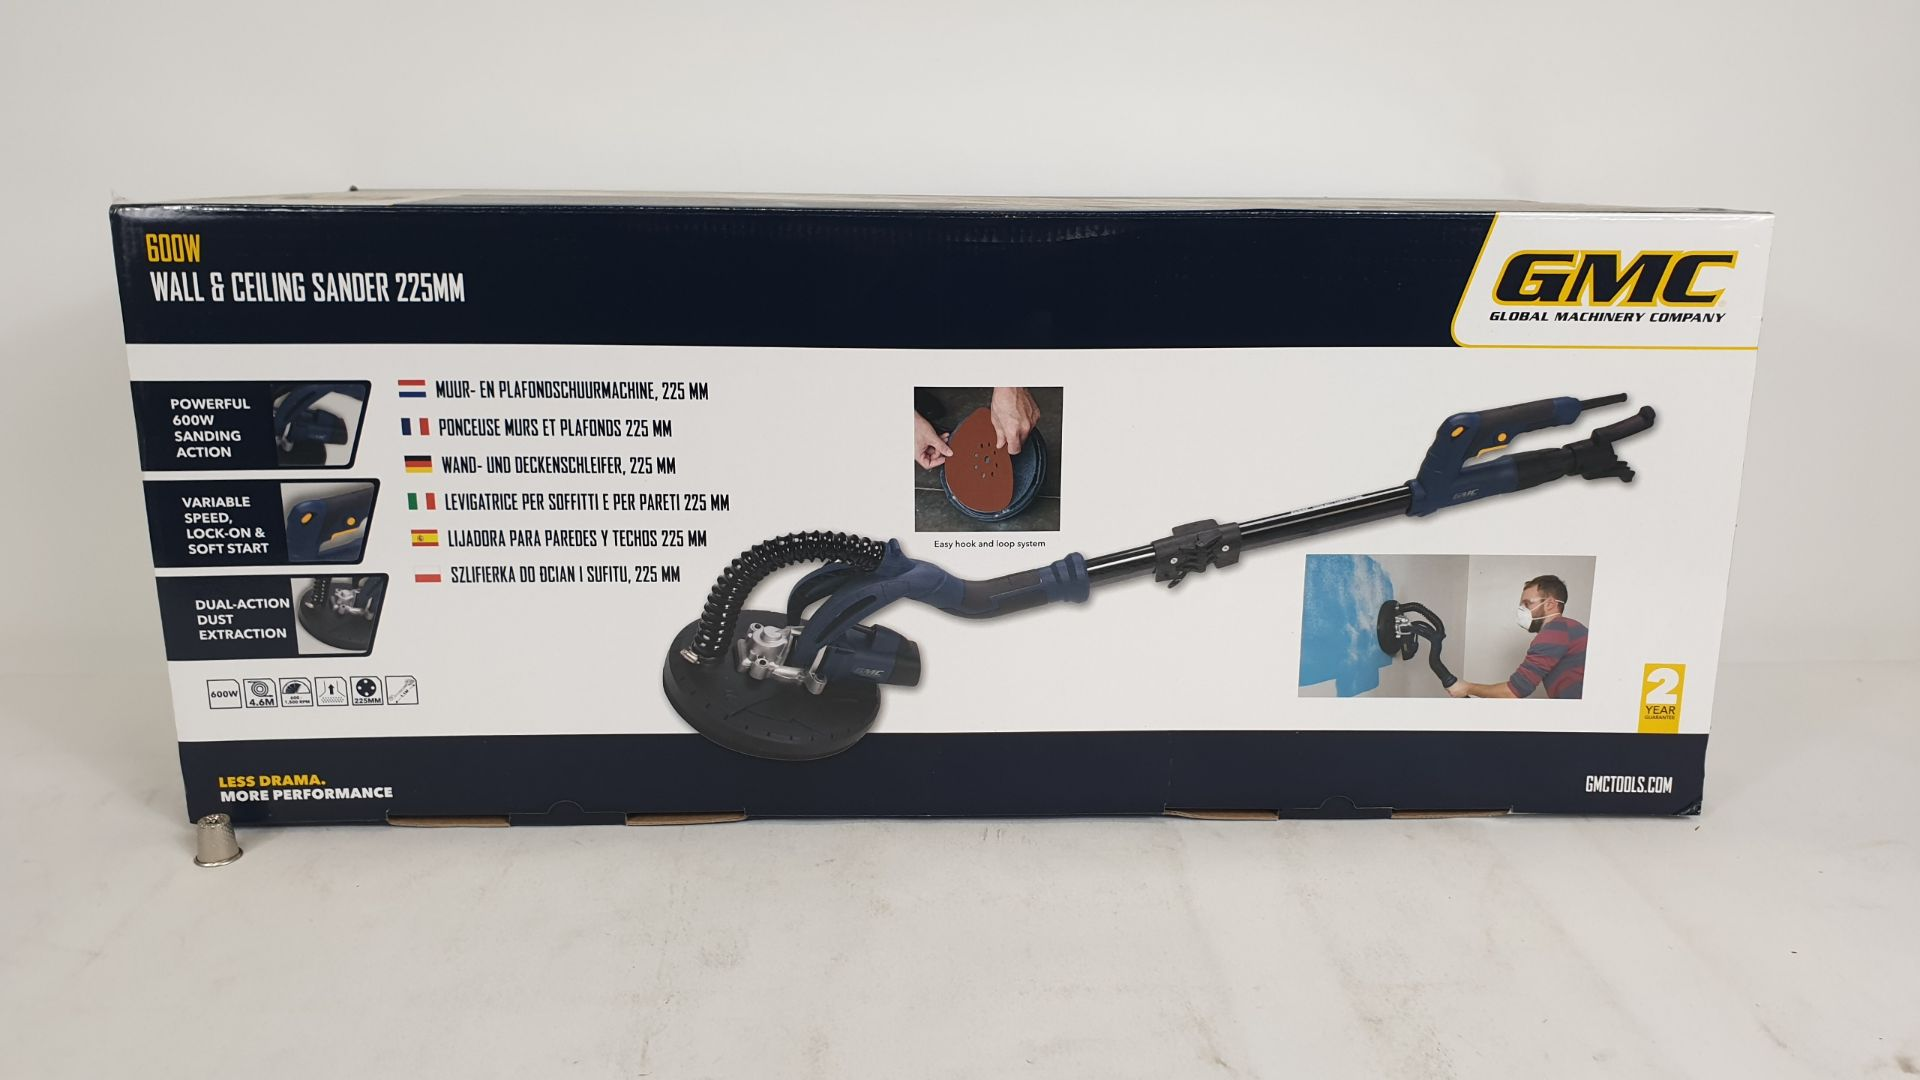 Lot 1554 - (LOT FOR THURSDAY 28TH MAY AUCTION) GMC 600W WALL AND CEILING SANDER 225M (PRODUCT CODE 264803) - (